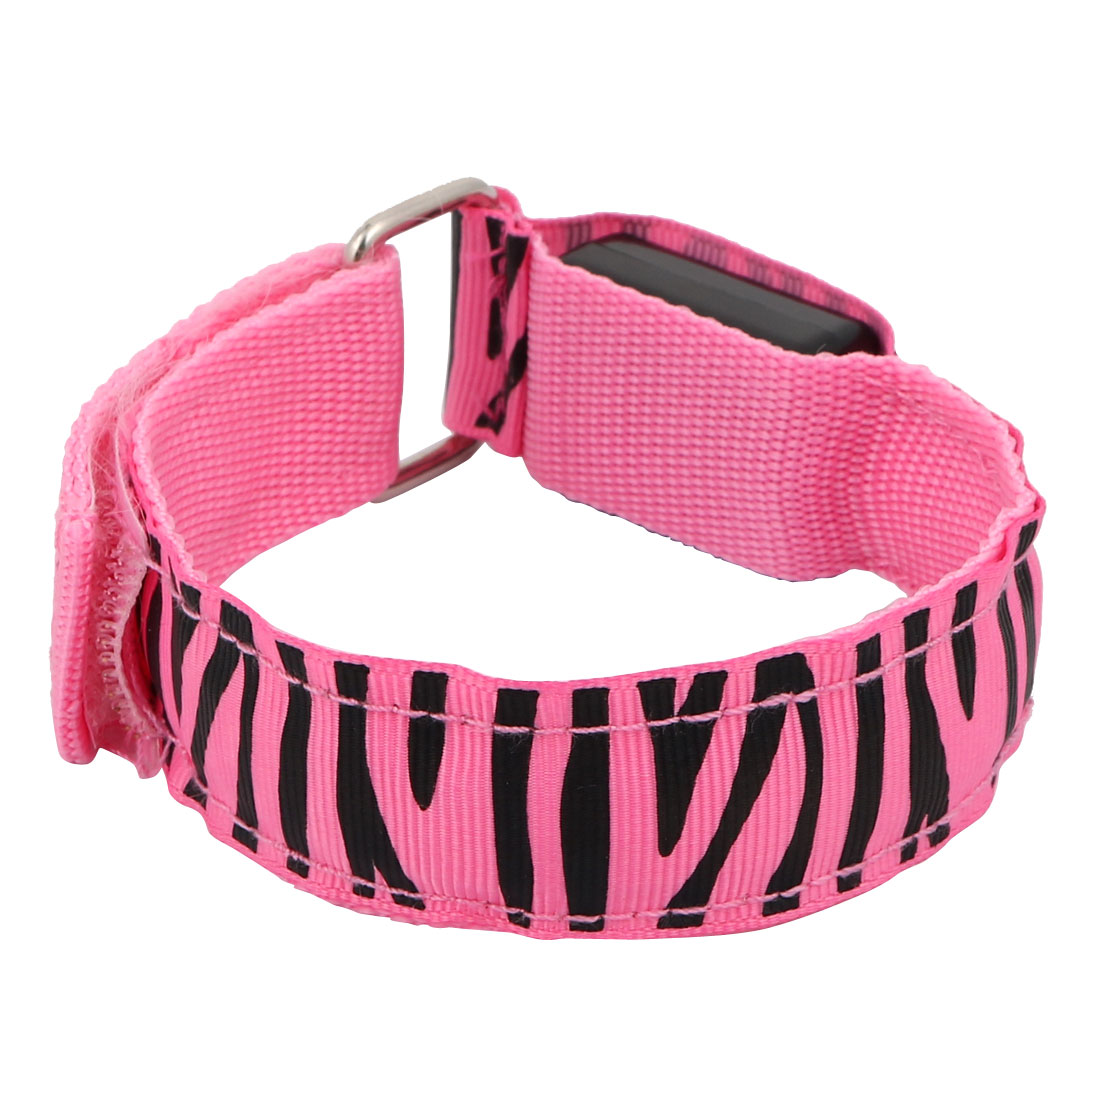 Unique Bargains Sport Running Safety Pink LED Zebra-striped Arm Band Wristband Light Up Armband - image 4 de 4